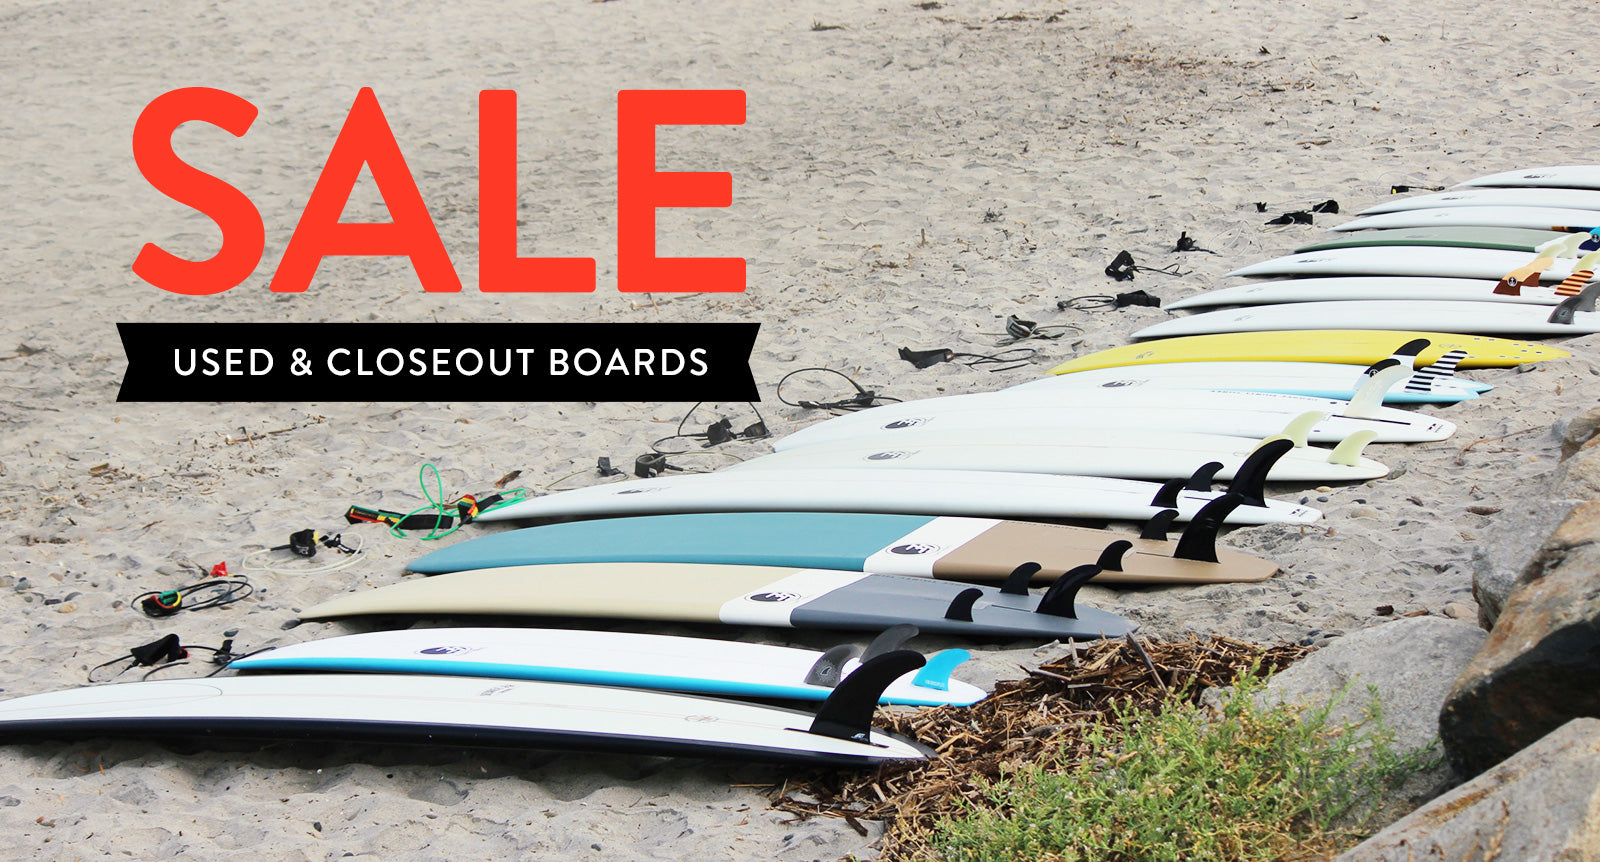 Closeout and Sale Surfboards